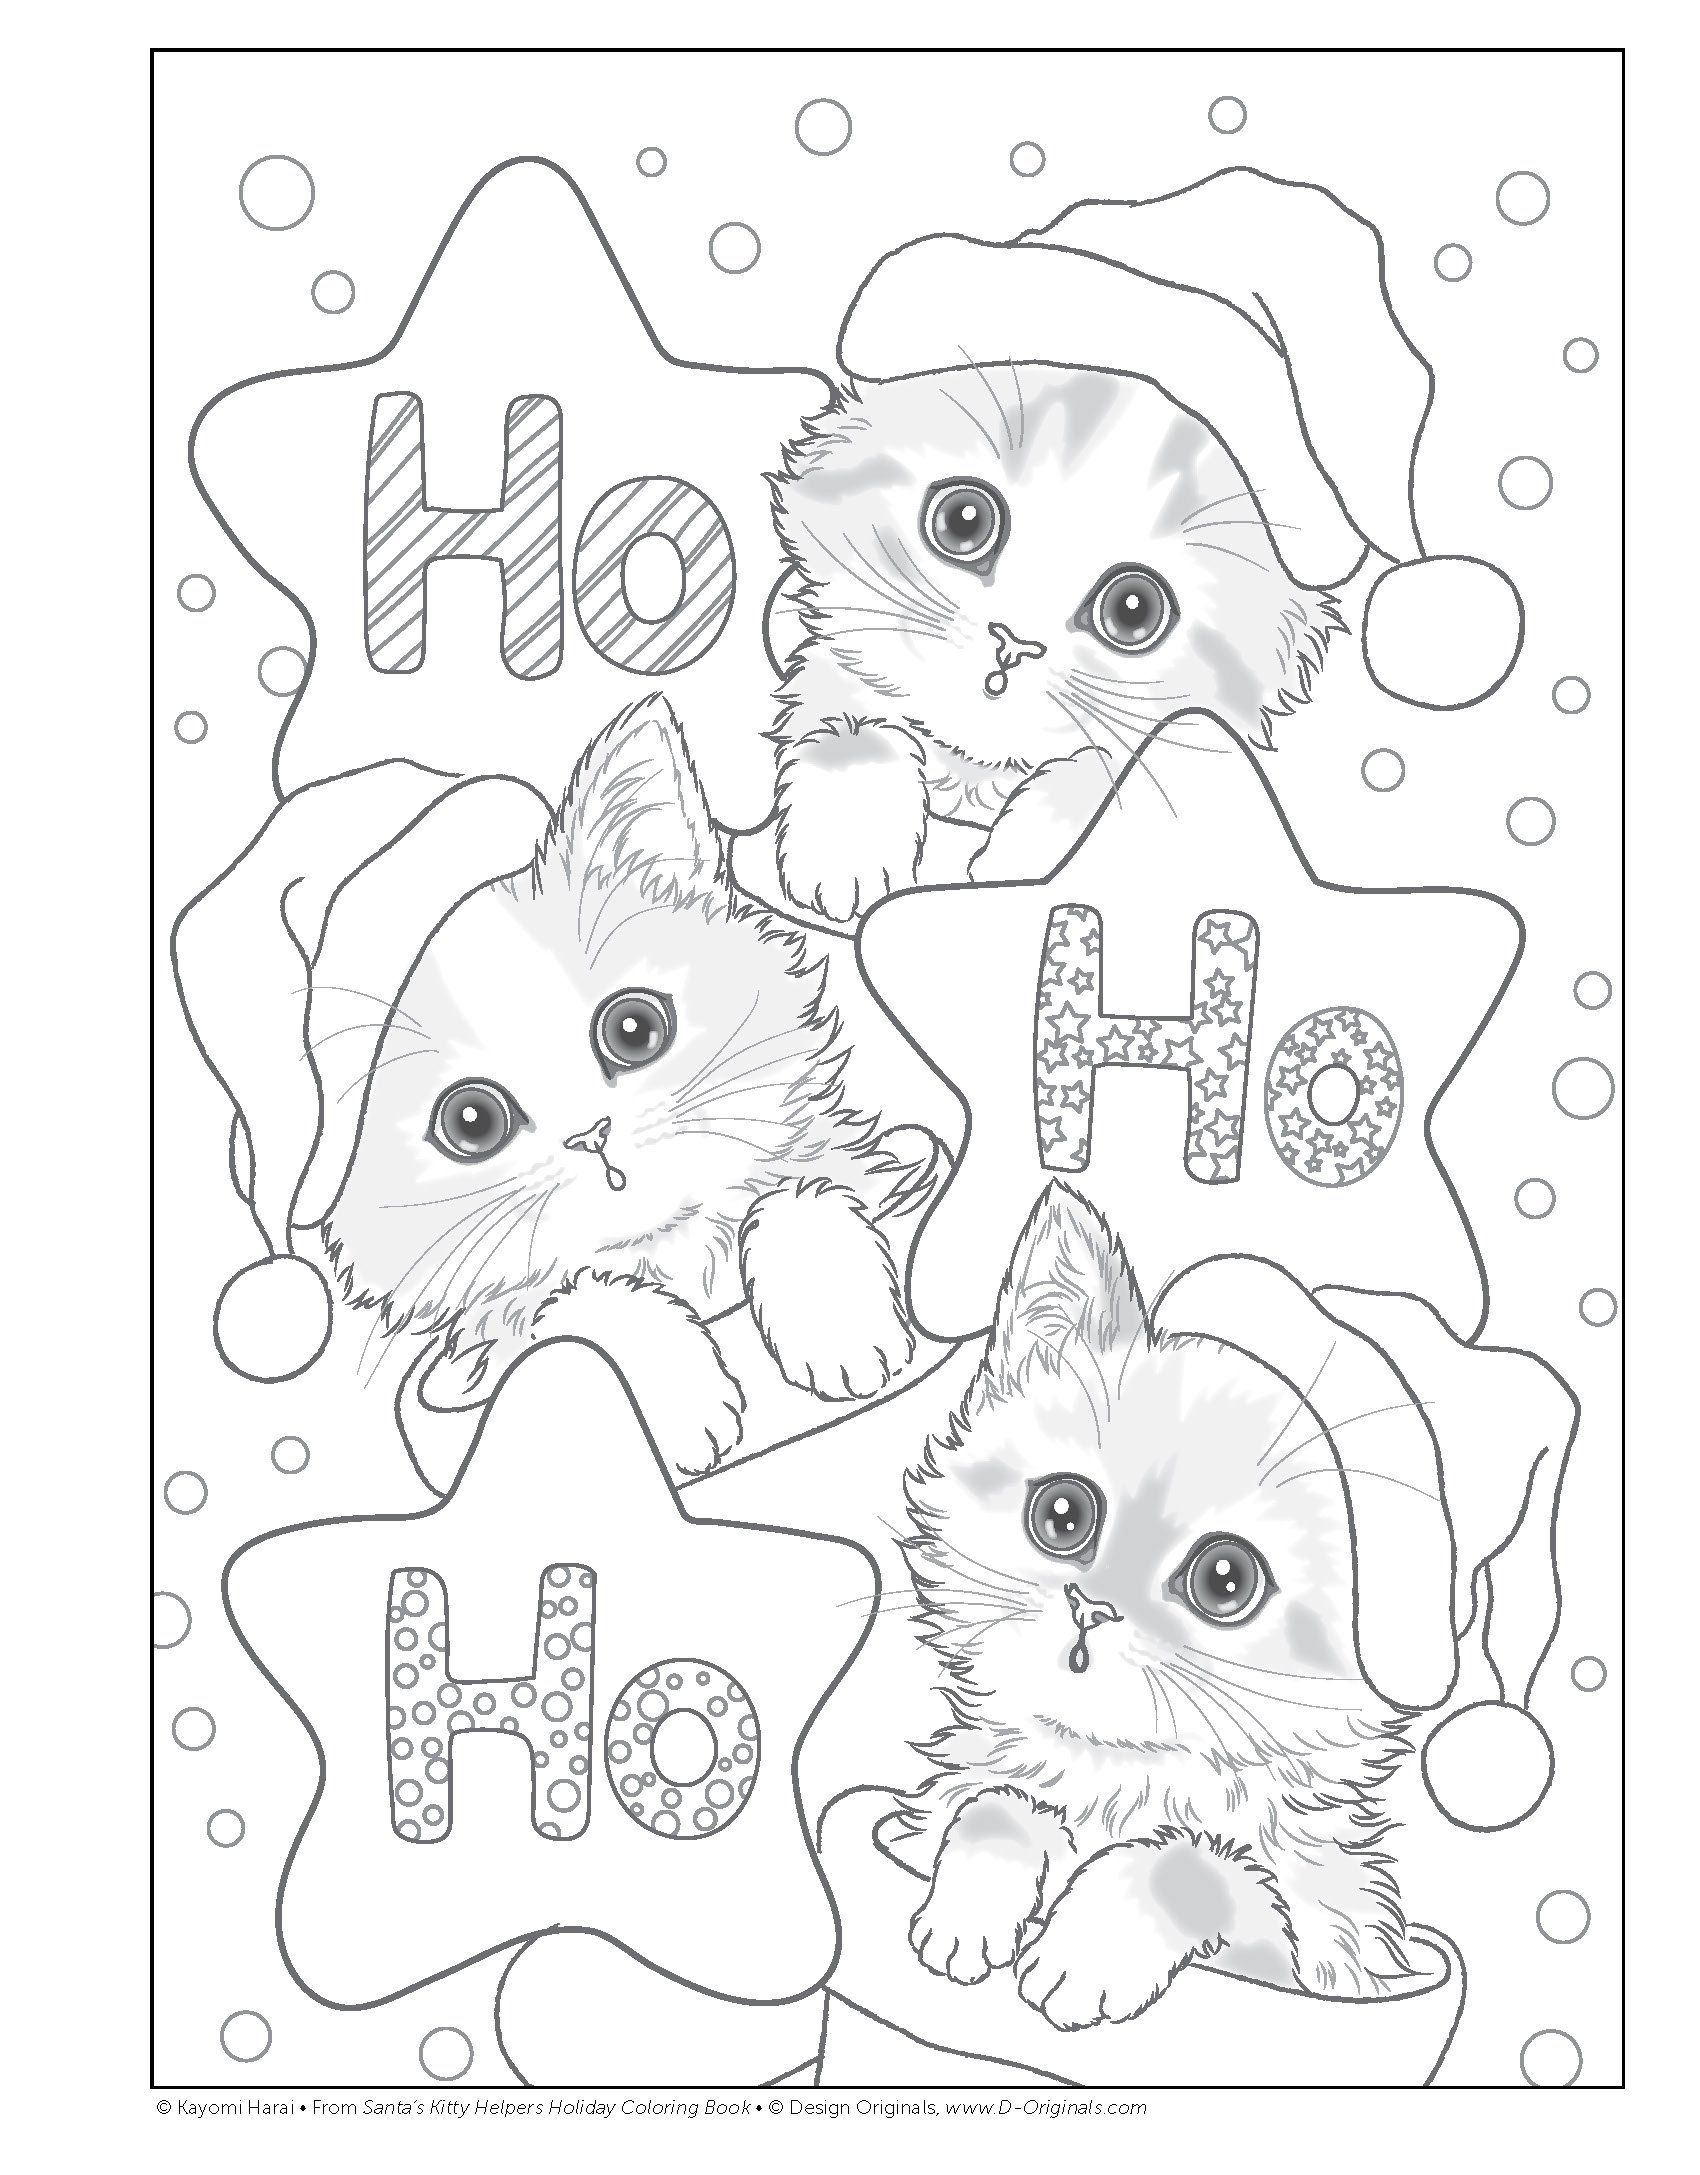 Santa S Kitty Helpers Holiday Coloring Book Design